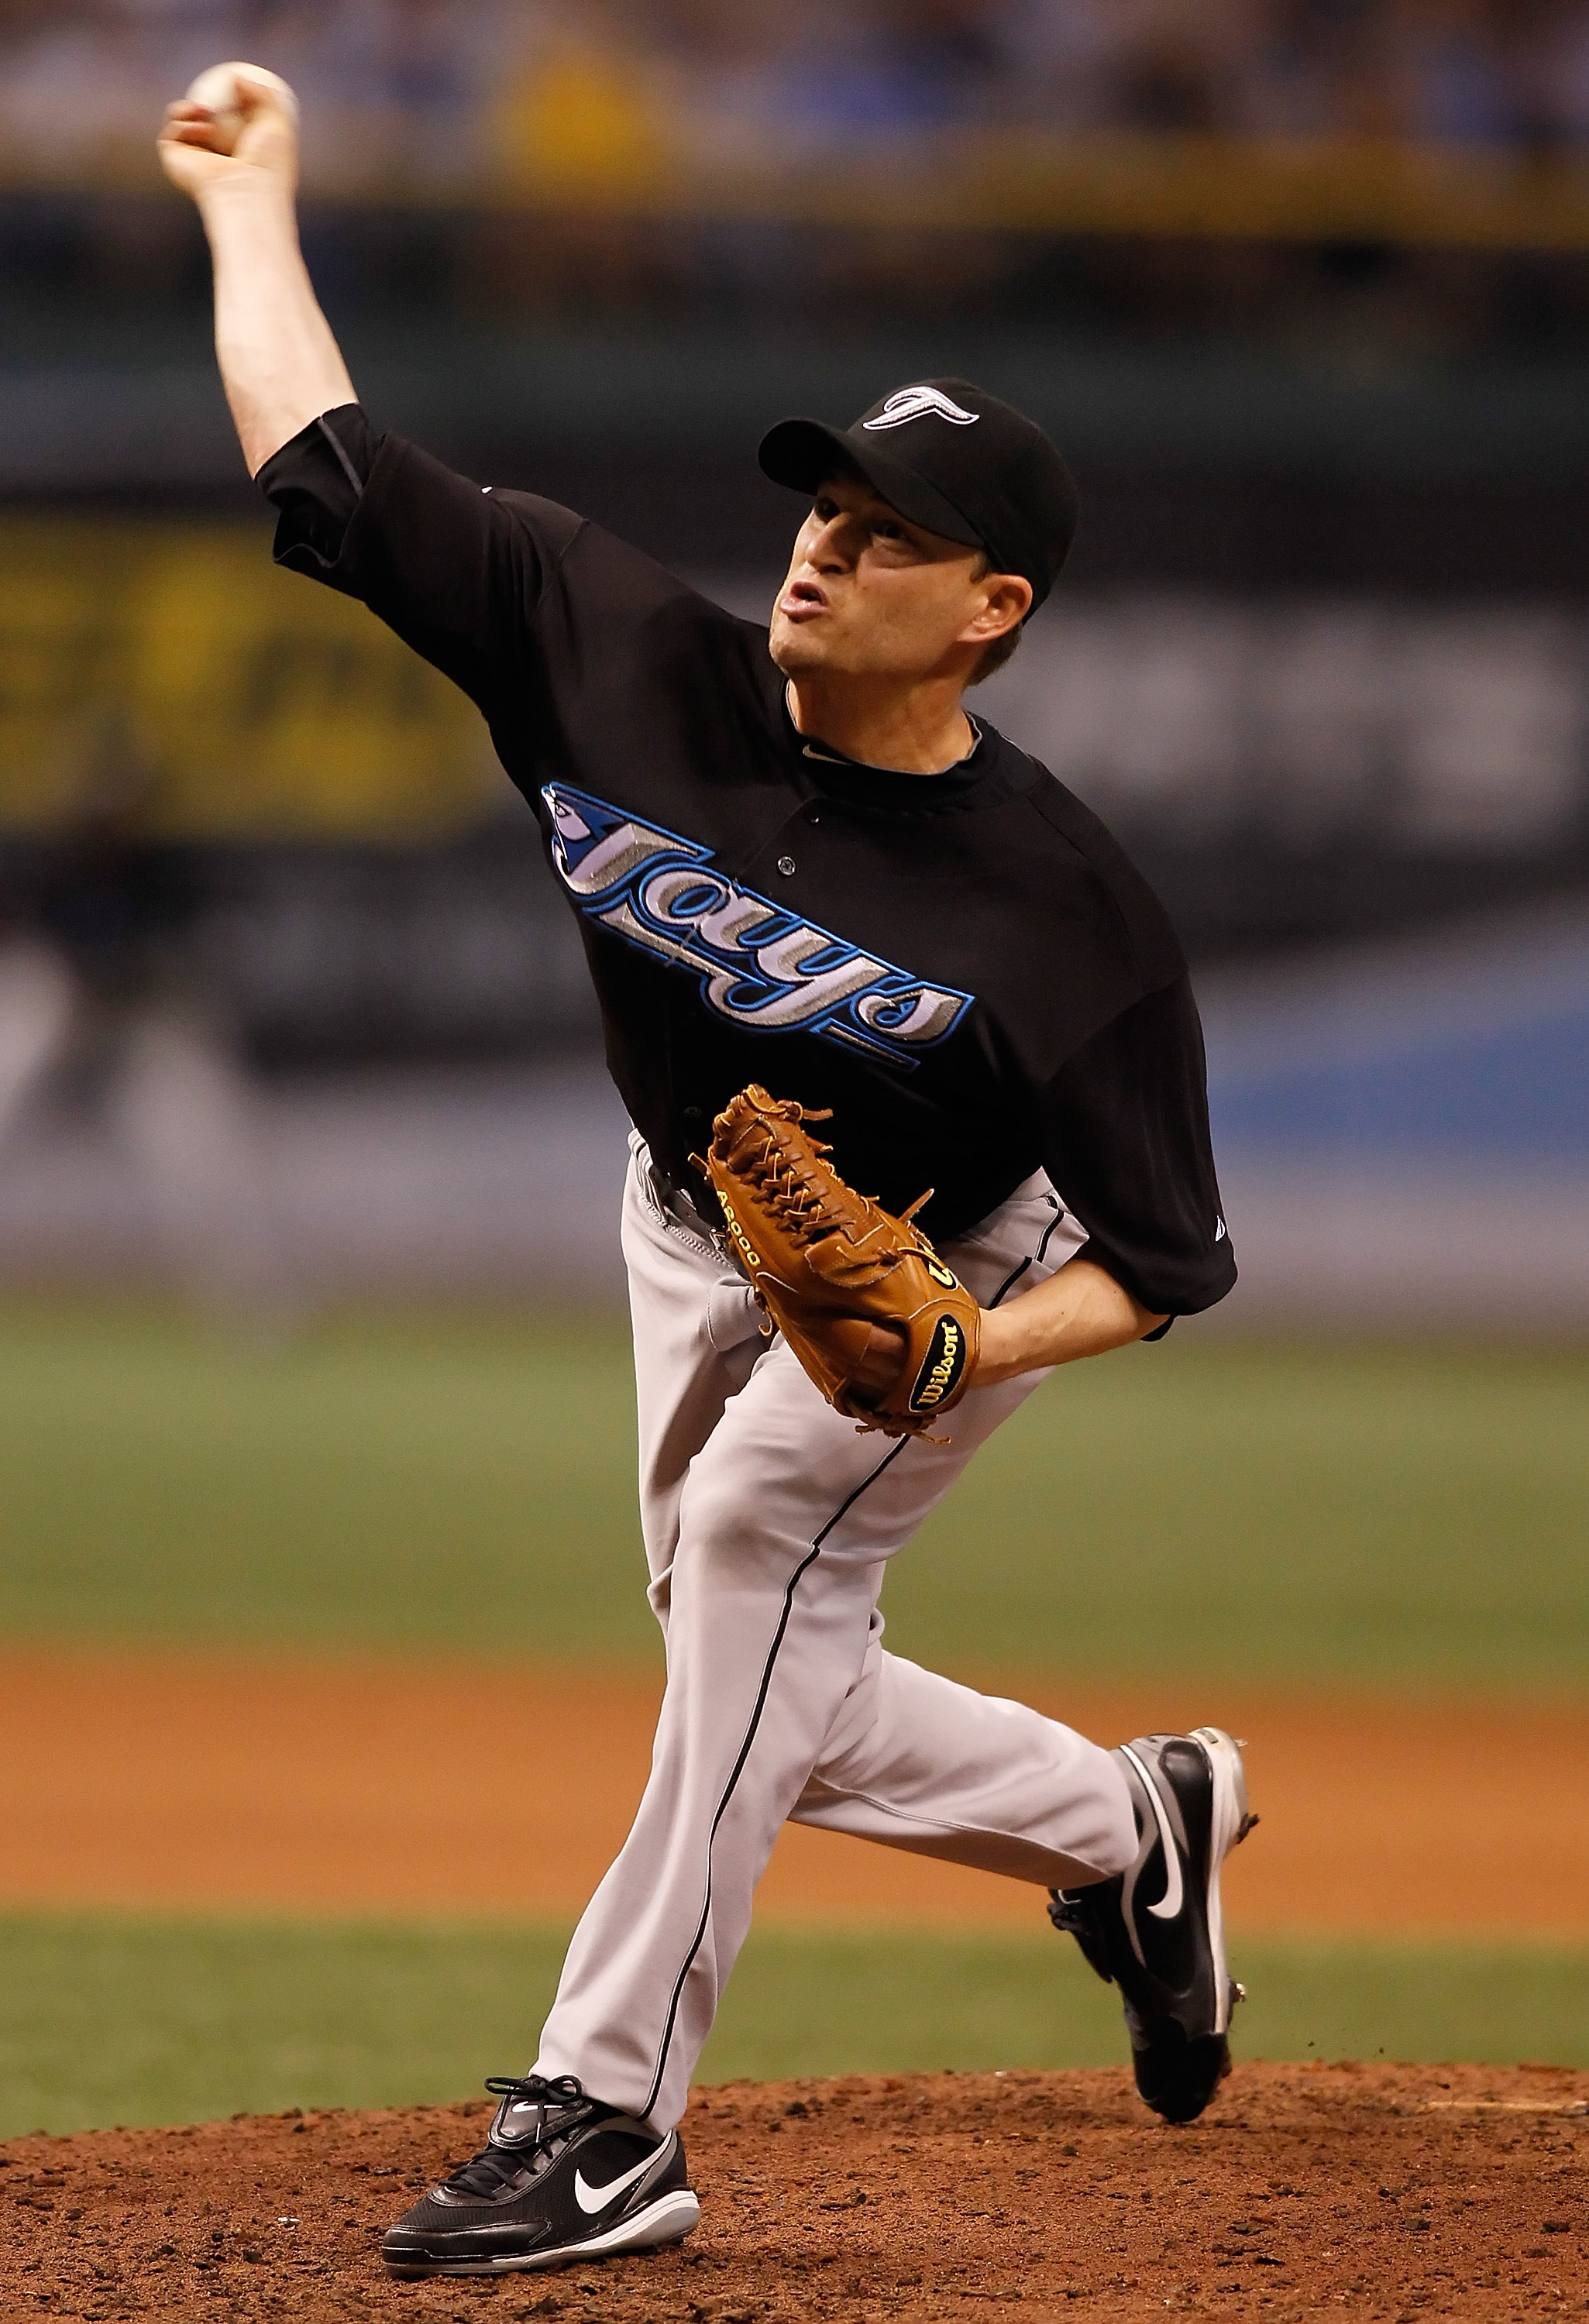 ST. PETERSBURG - APRIL 23:  Pitcher Jason Frasor #54 of the Toronto Blue Jays pitches against the Tampa Bay Rays during the game at Tropicana Field on April 23, 2010 in St. Petersburg, Florida.  (Photo by J. Meric/Getty Images)